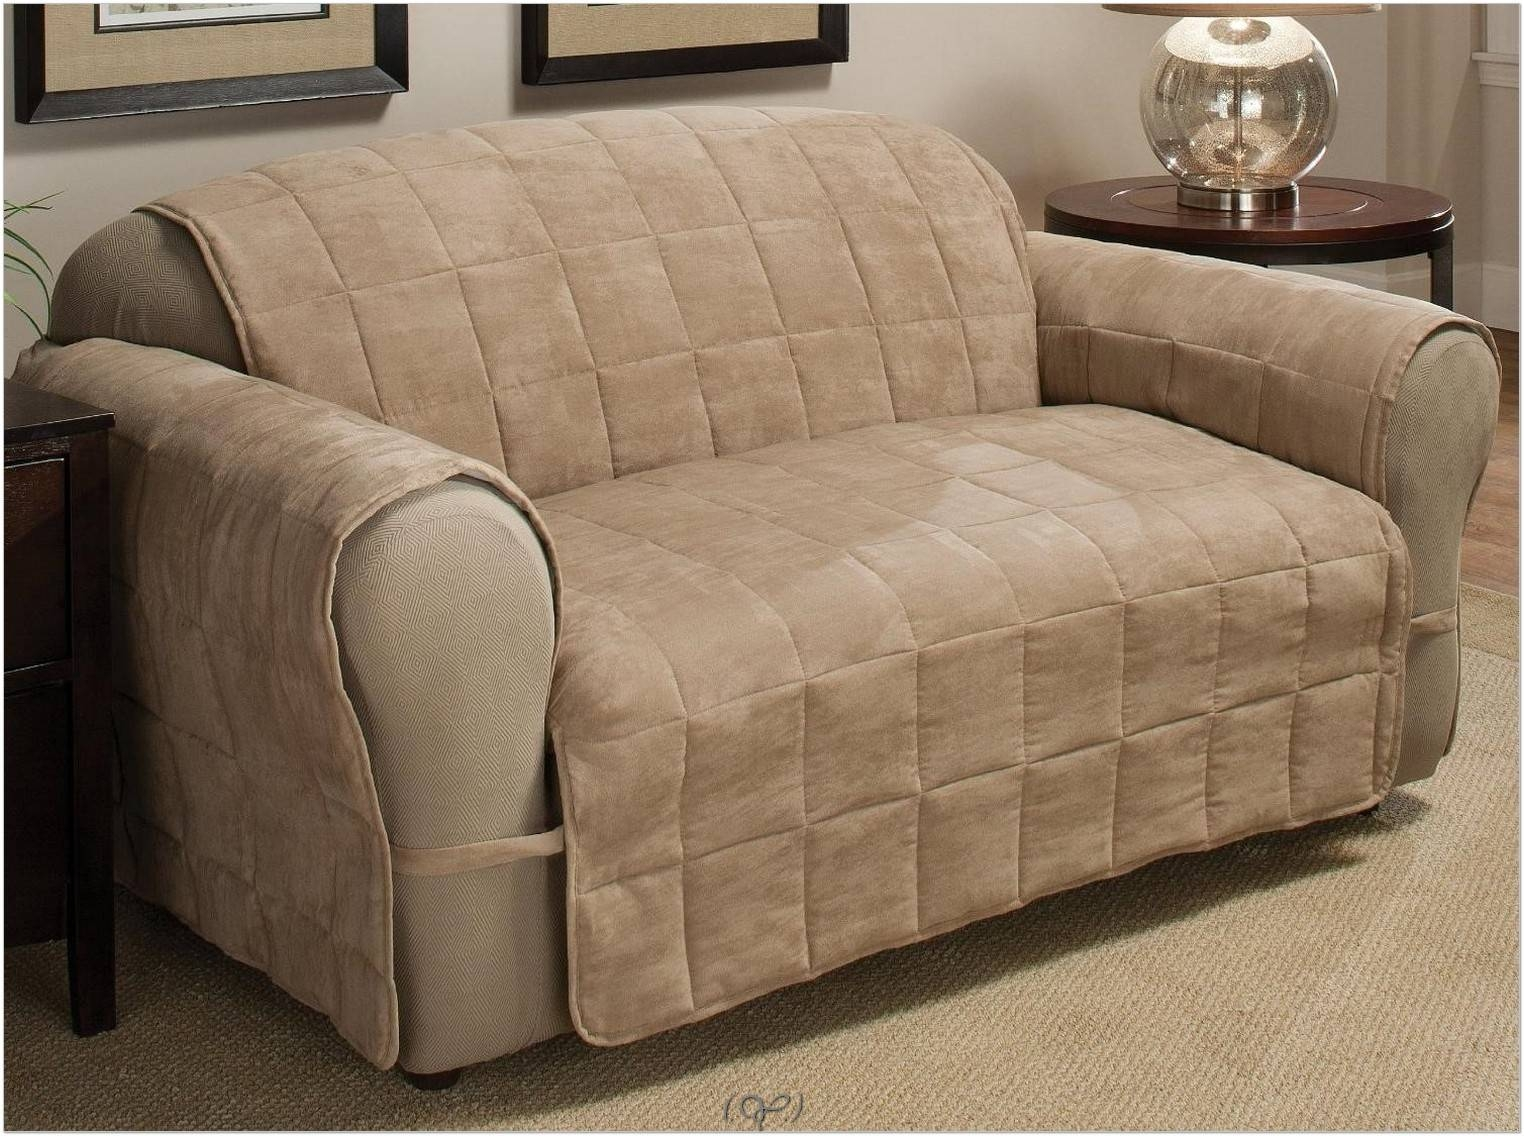 Interior : 269 Sofa Covers For Leather Sofas Wkzs with Slipcover For Leather Sofas (Image 20 of 30)